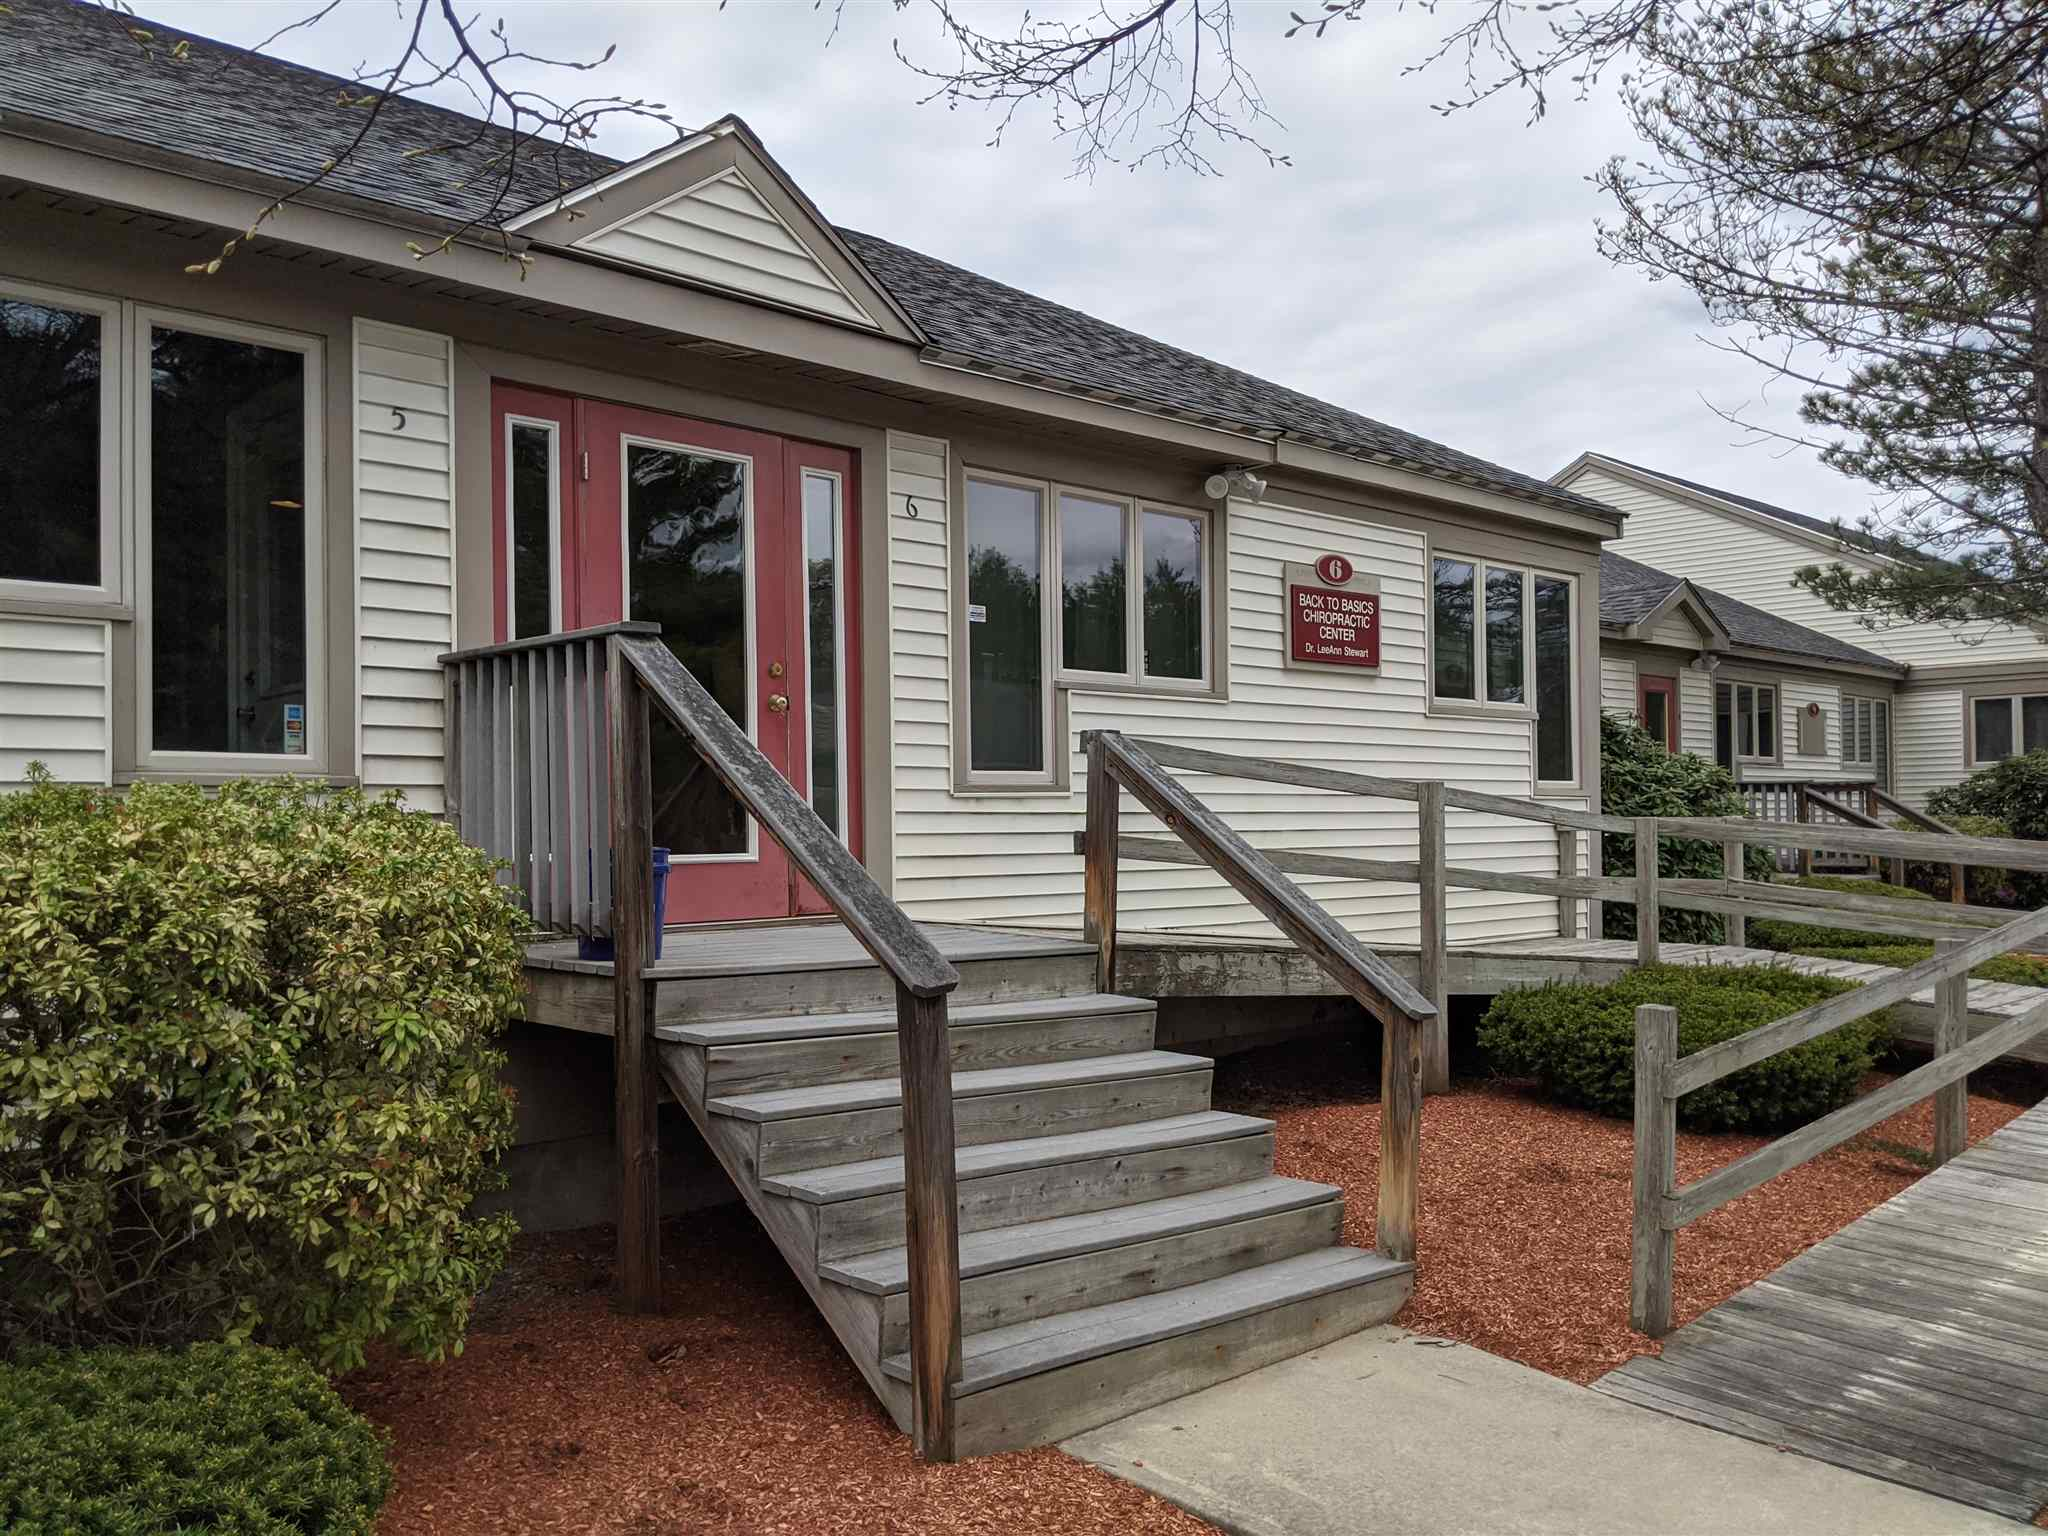 MLS 4804671: 5 Northern Boulevard-Unit 6, Amherst NH